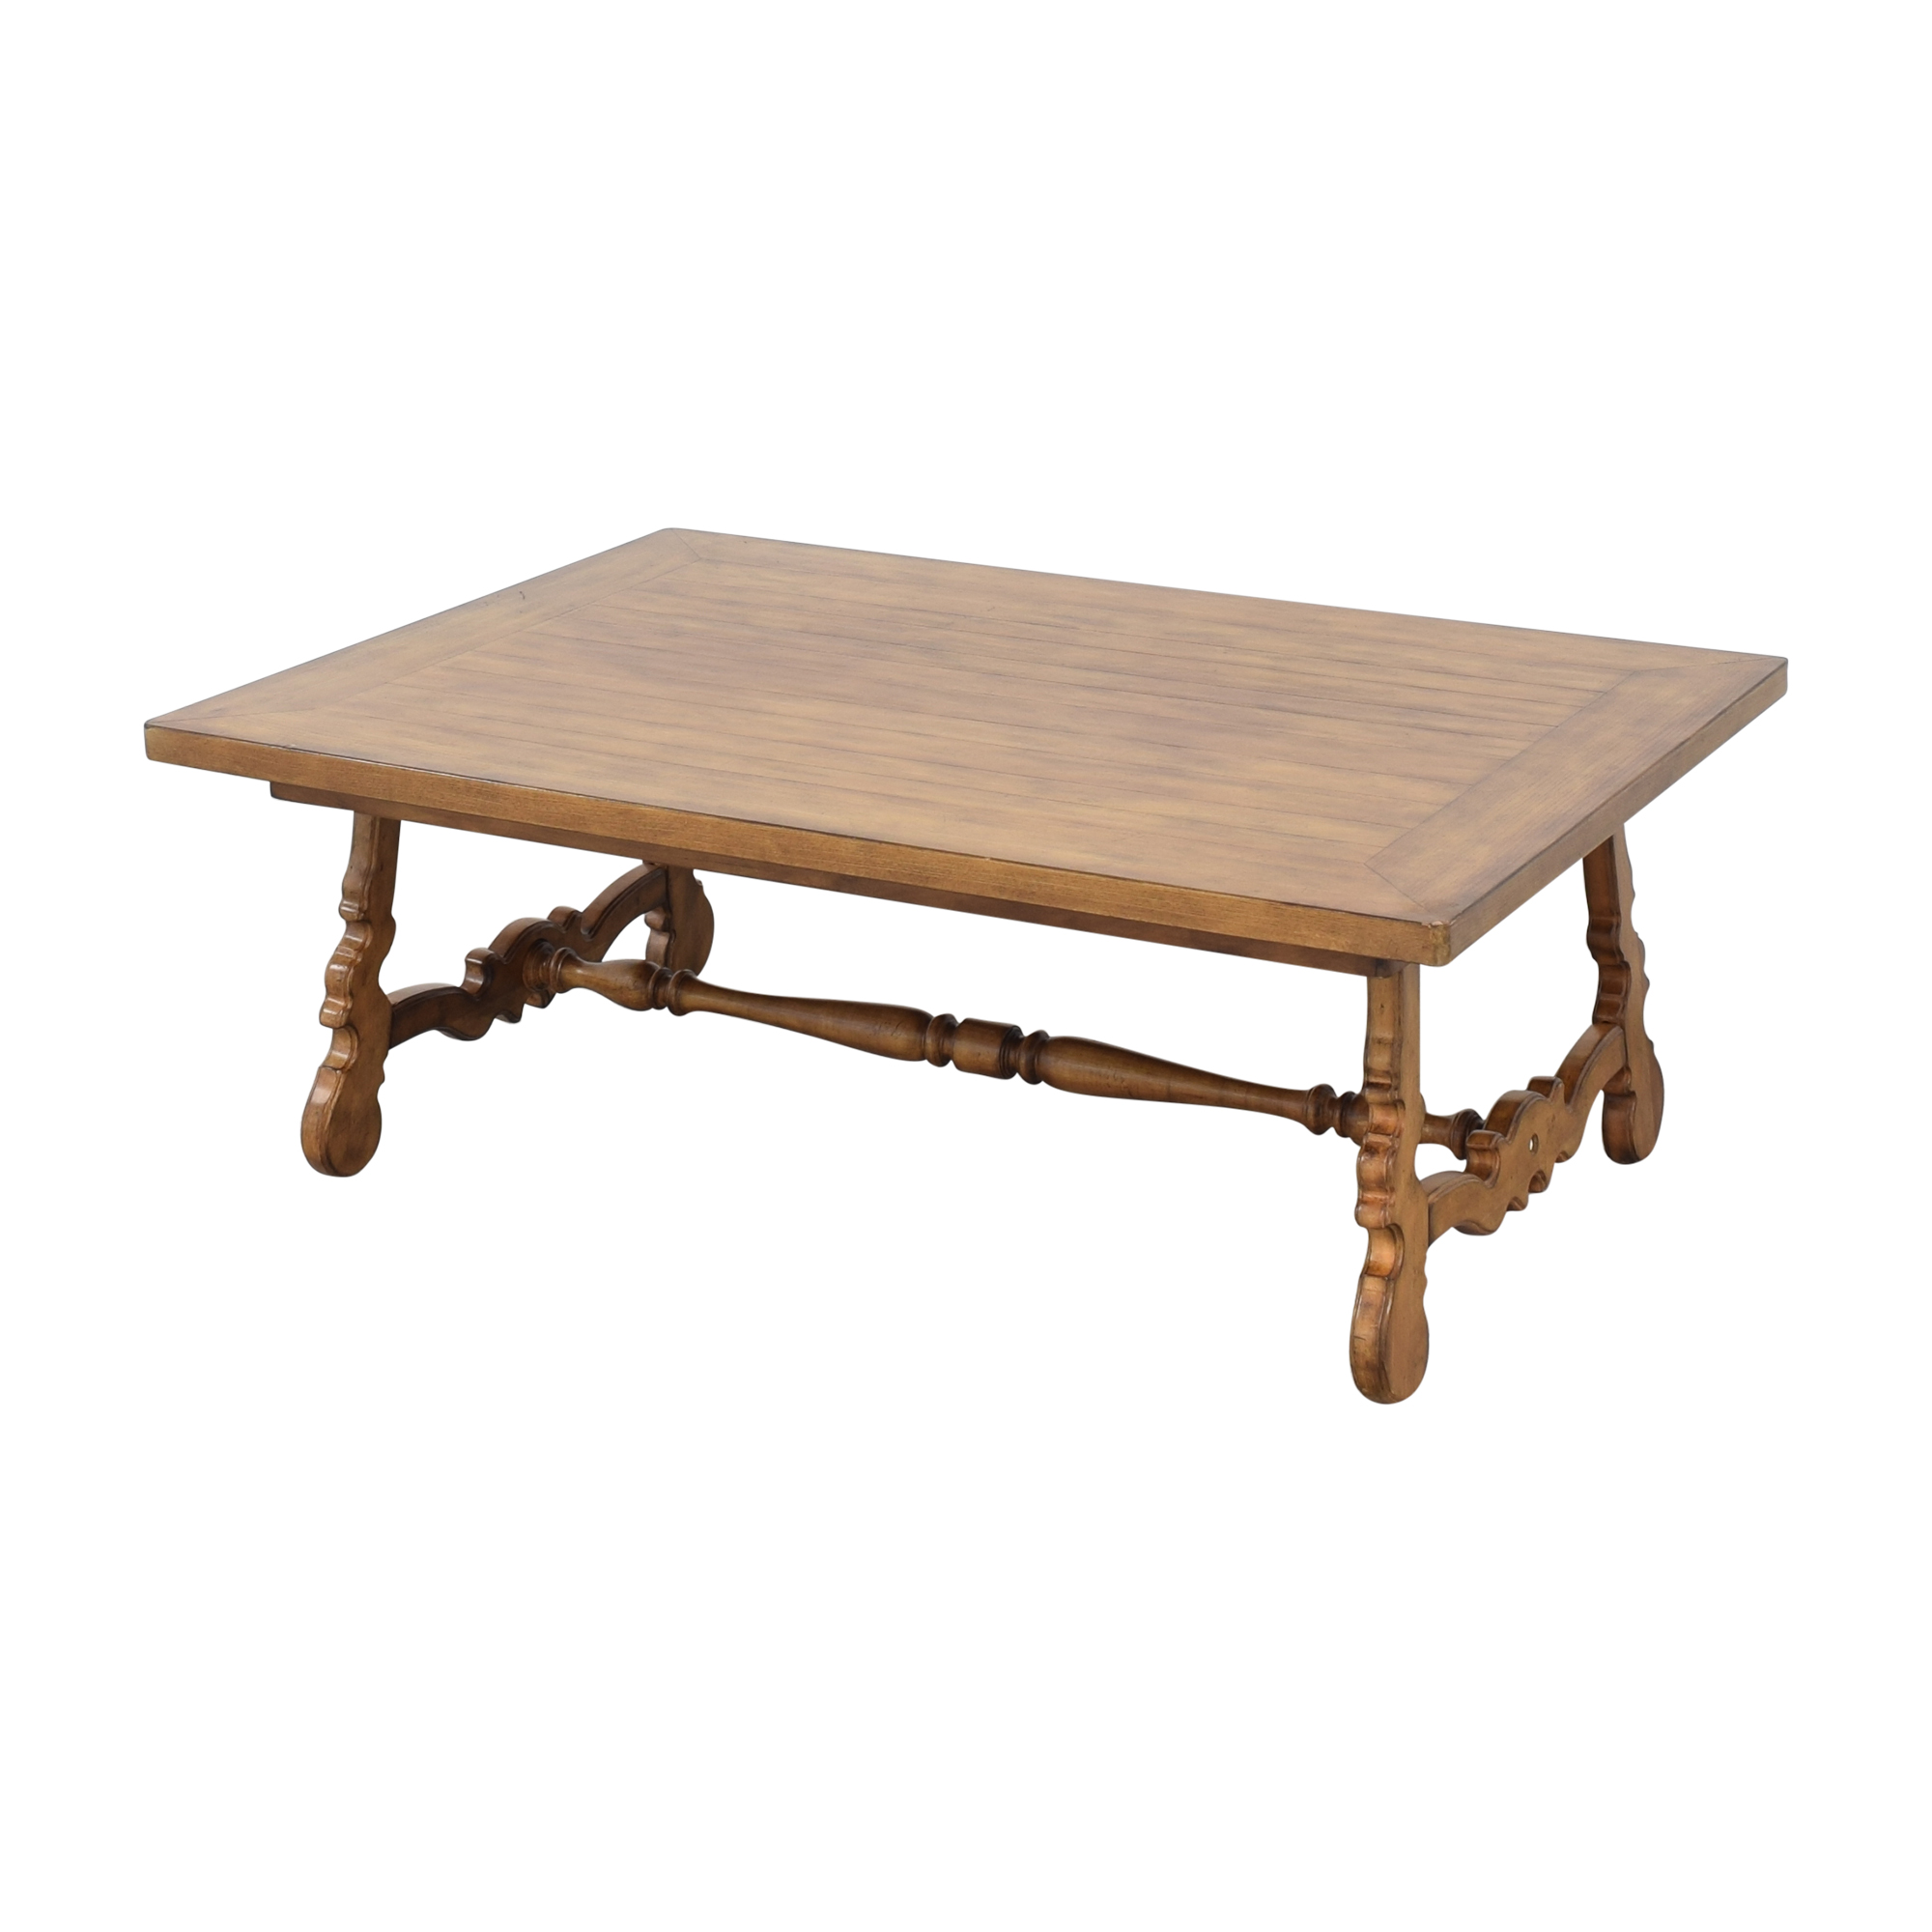 Hooker Furniture Hooker Coffee Table second hand